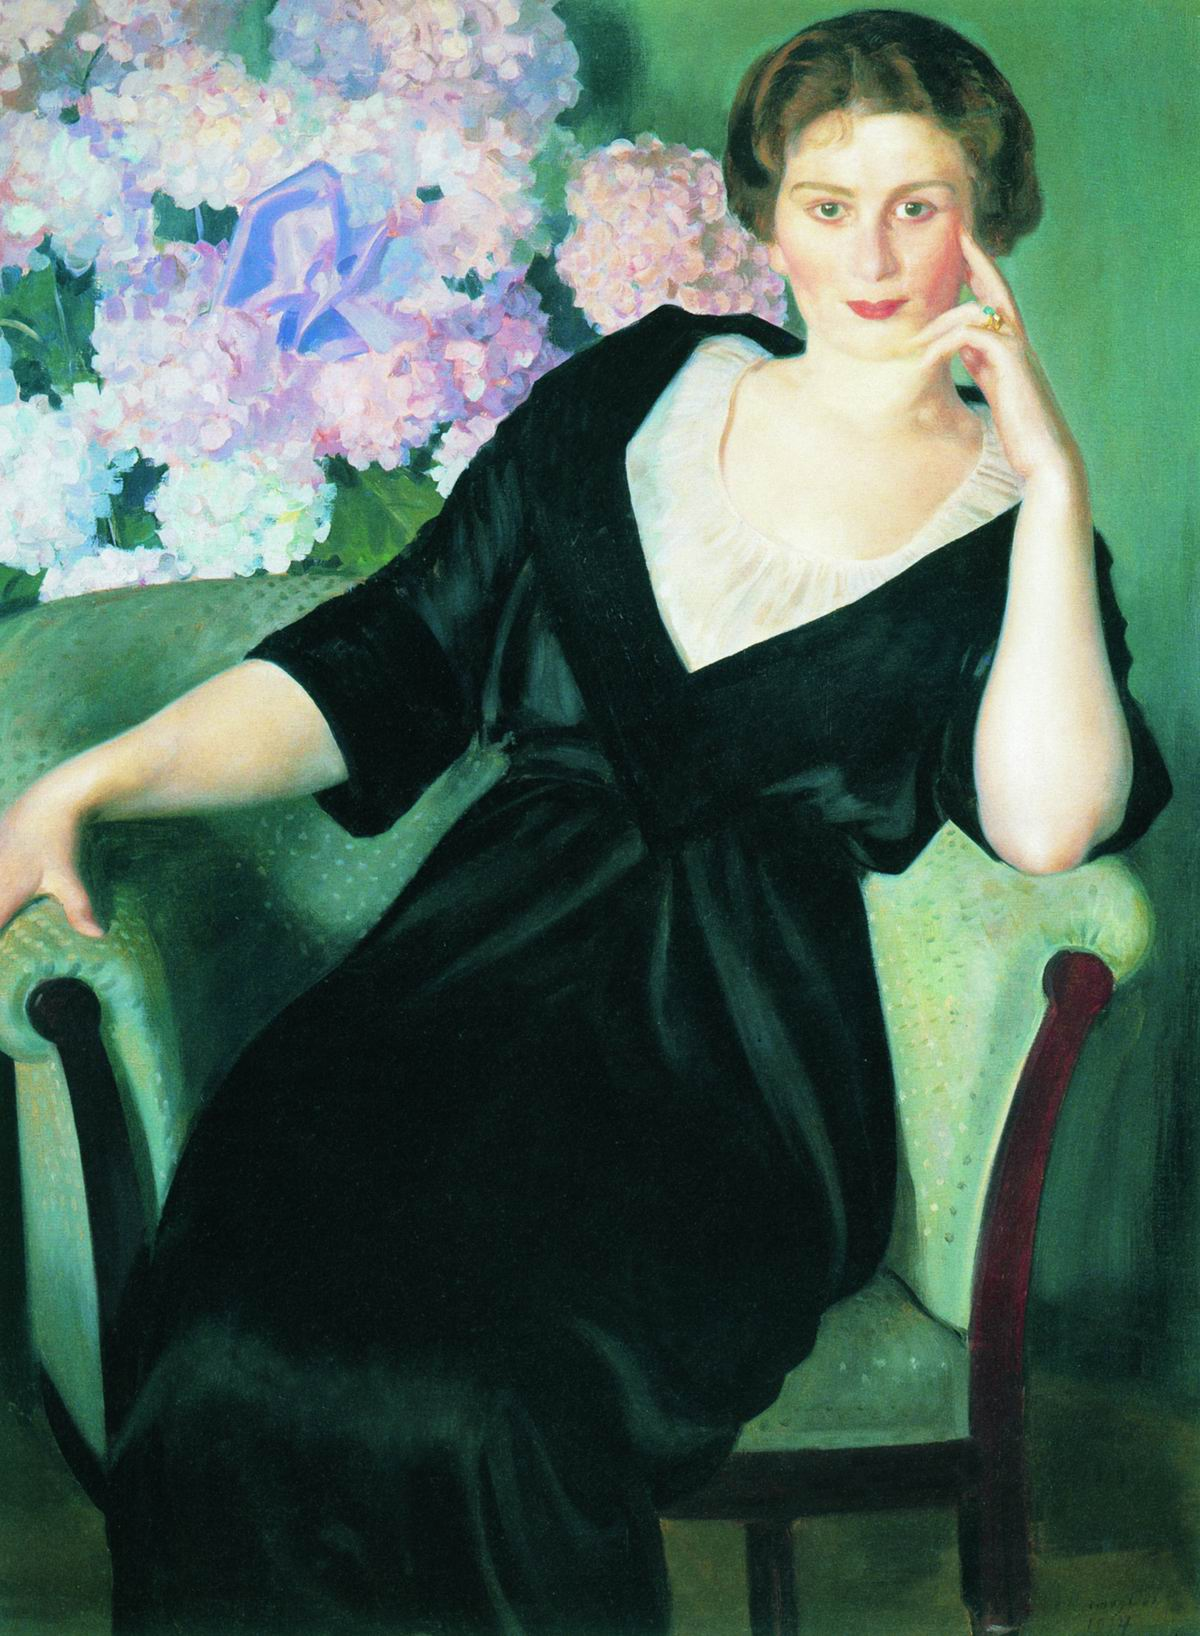 https://i1.wp.com/upload.wikimedia.org/wikipedia/commons/f/fc/Kustodiev_Renee_Notgaft.jpg